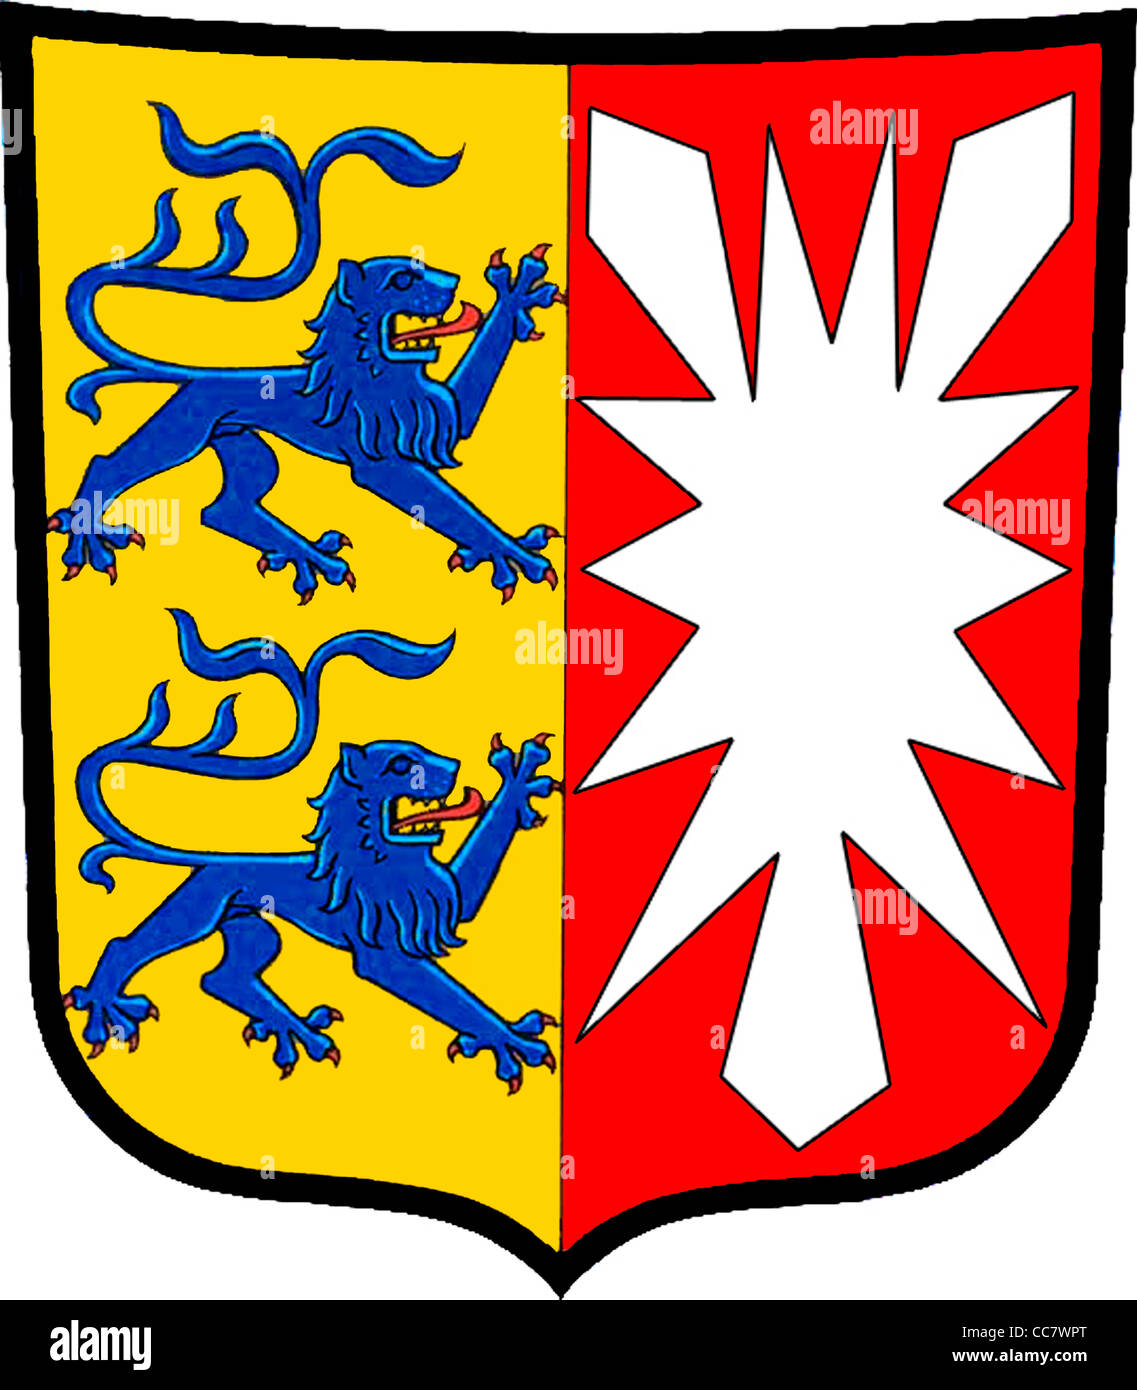 Coat of arms of the German federal state Schleswig Holstein. - Stock Image